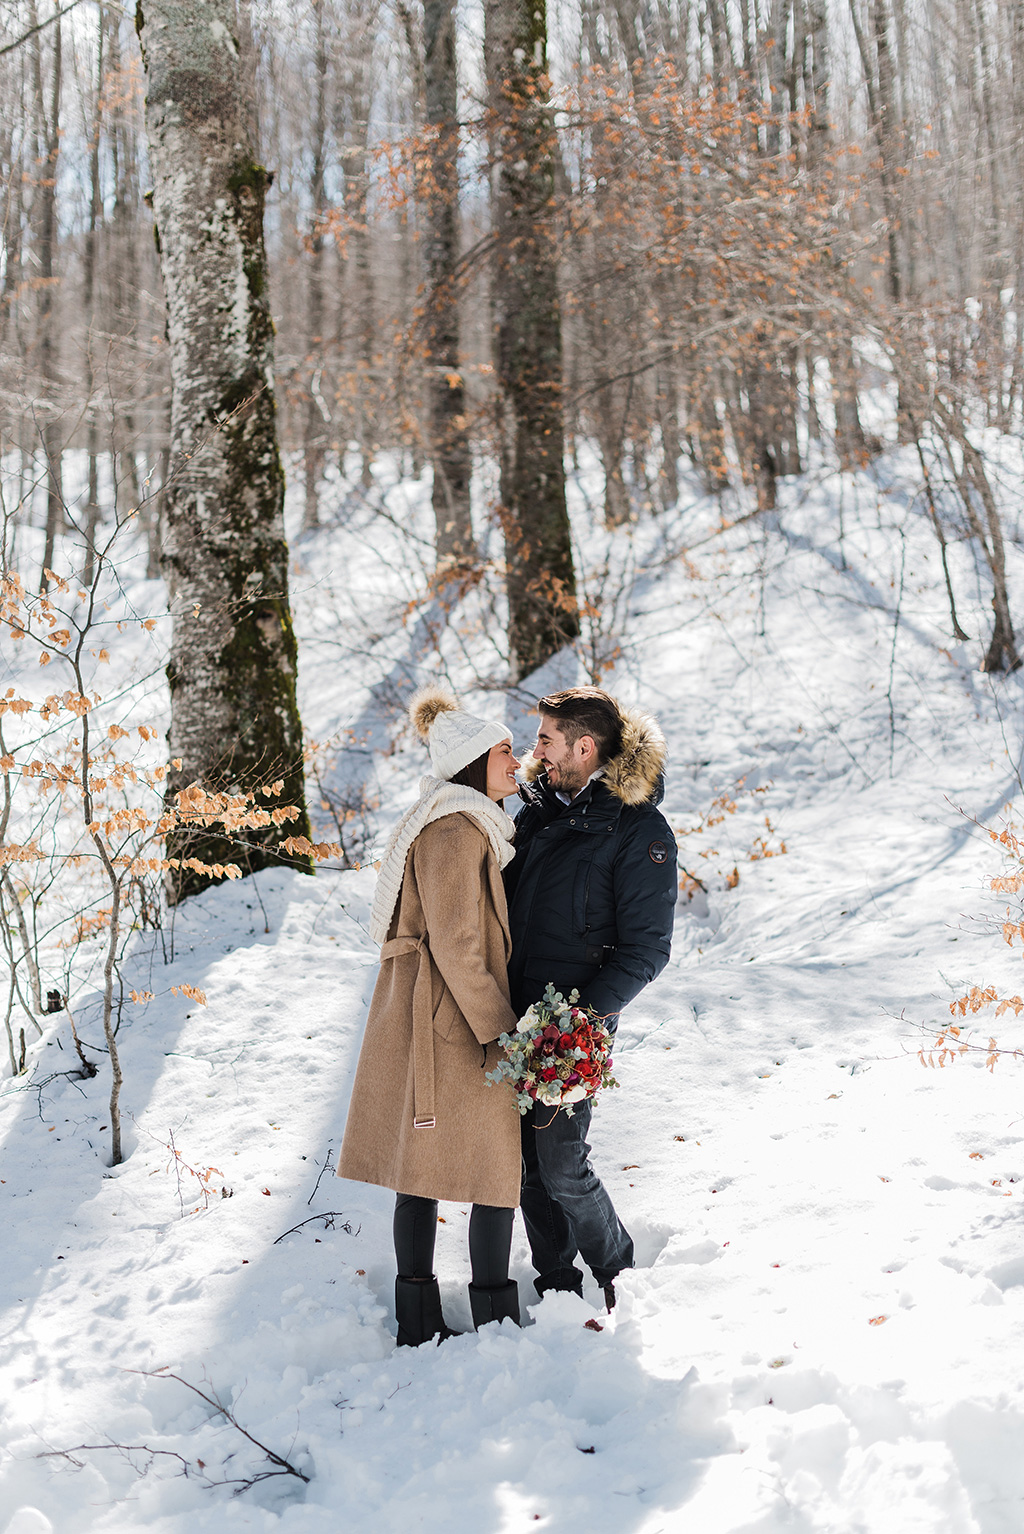 Engagement winter session, George Kostopoulos Fine Art Wedding Photography